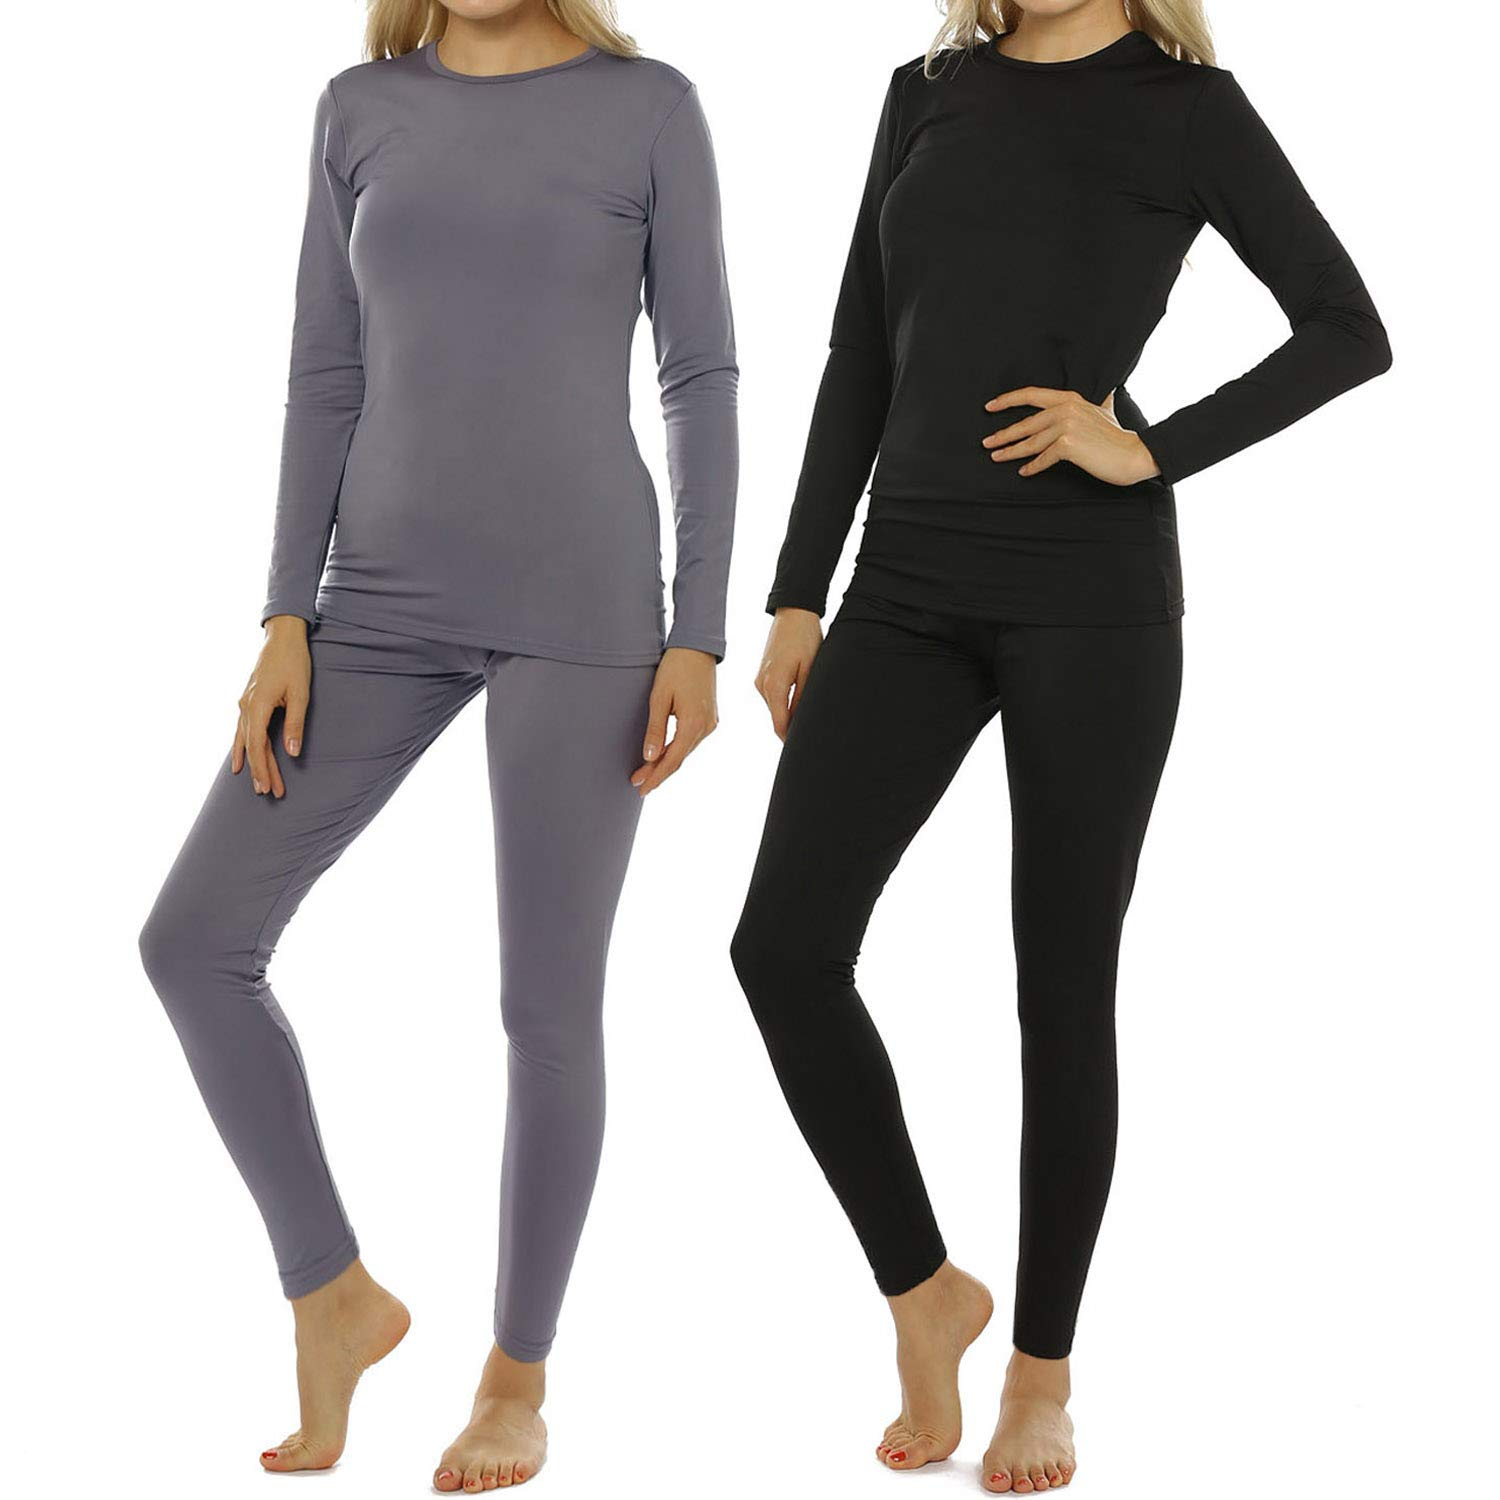 Womens Thermal Underwear Set Long Johns with Fleece Lined Ultra Soft Top & Bottom Base Layer for Women by ViCherub